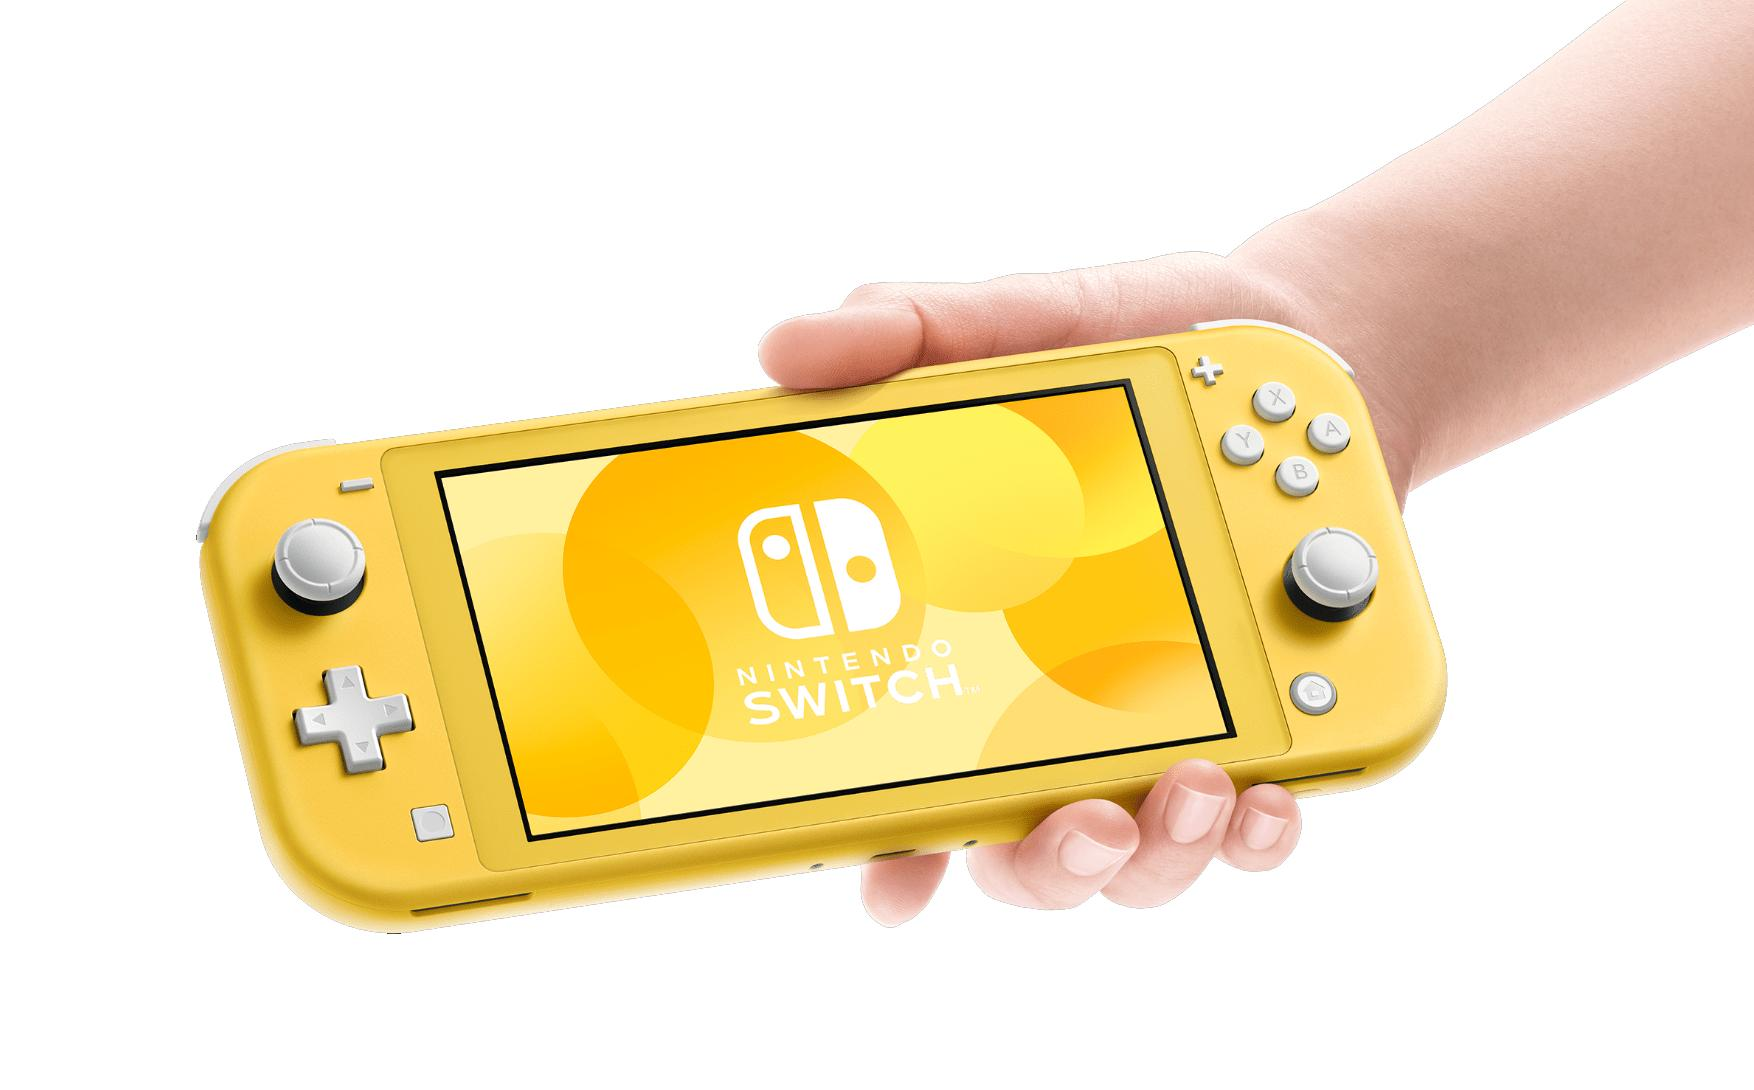 Why to buy the Nintendo Switch Lite